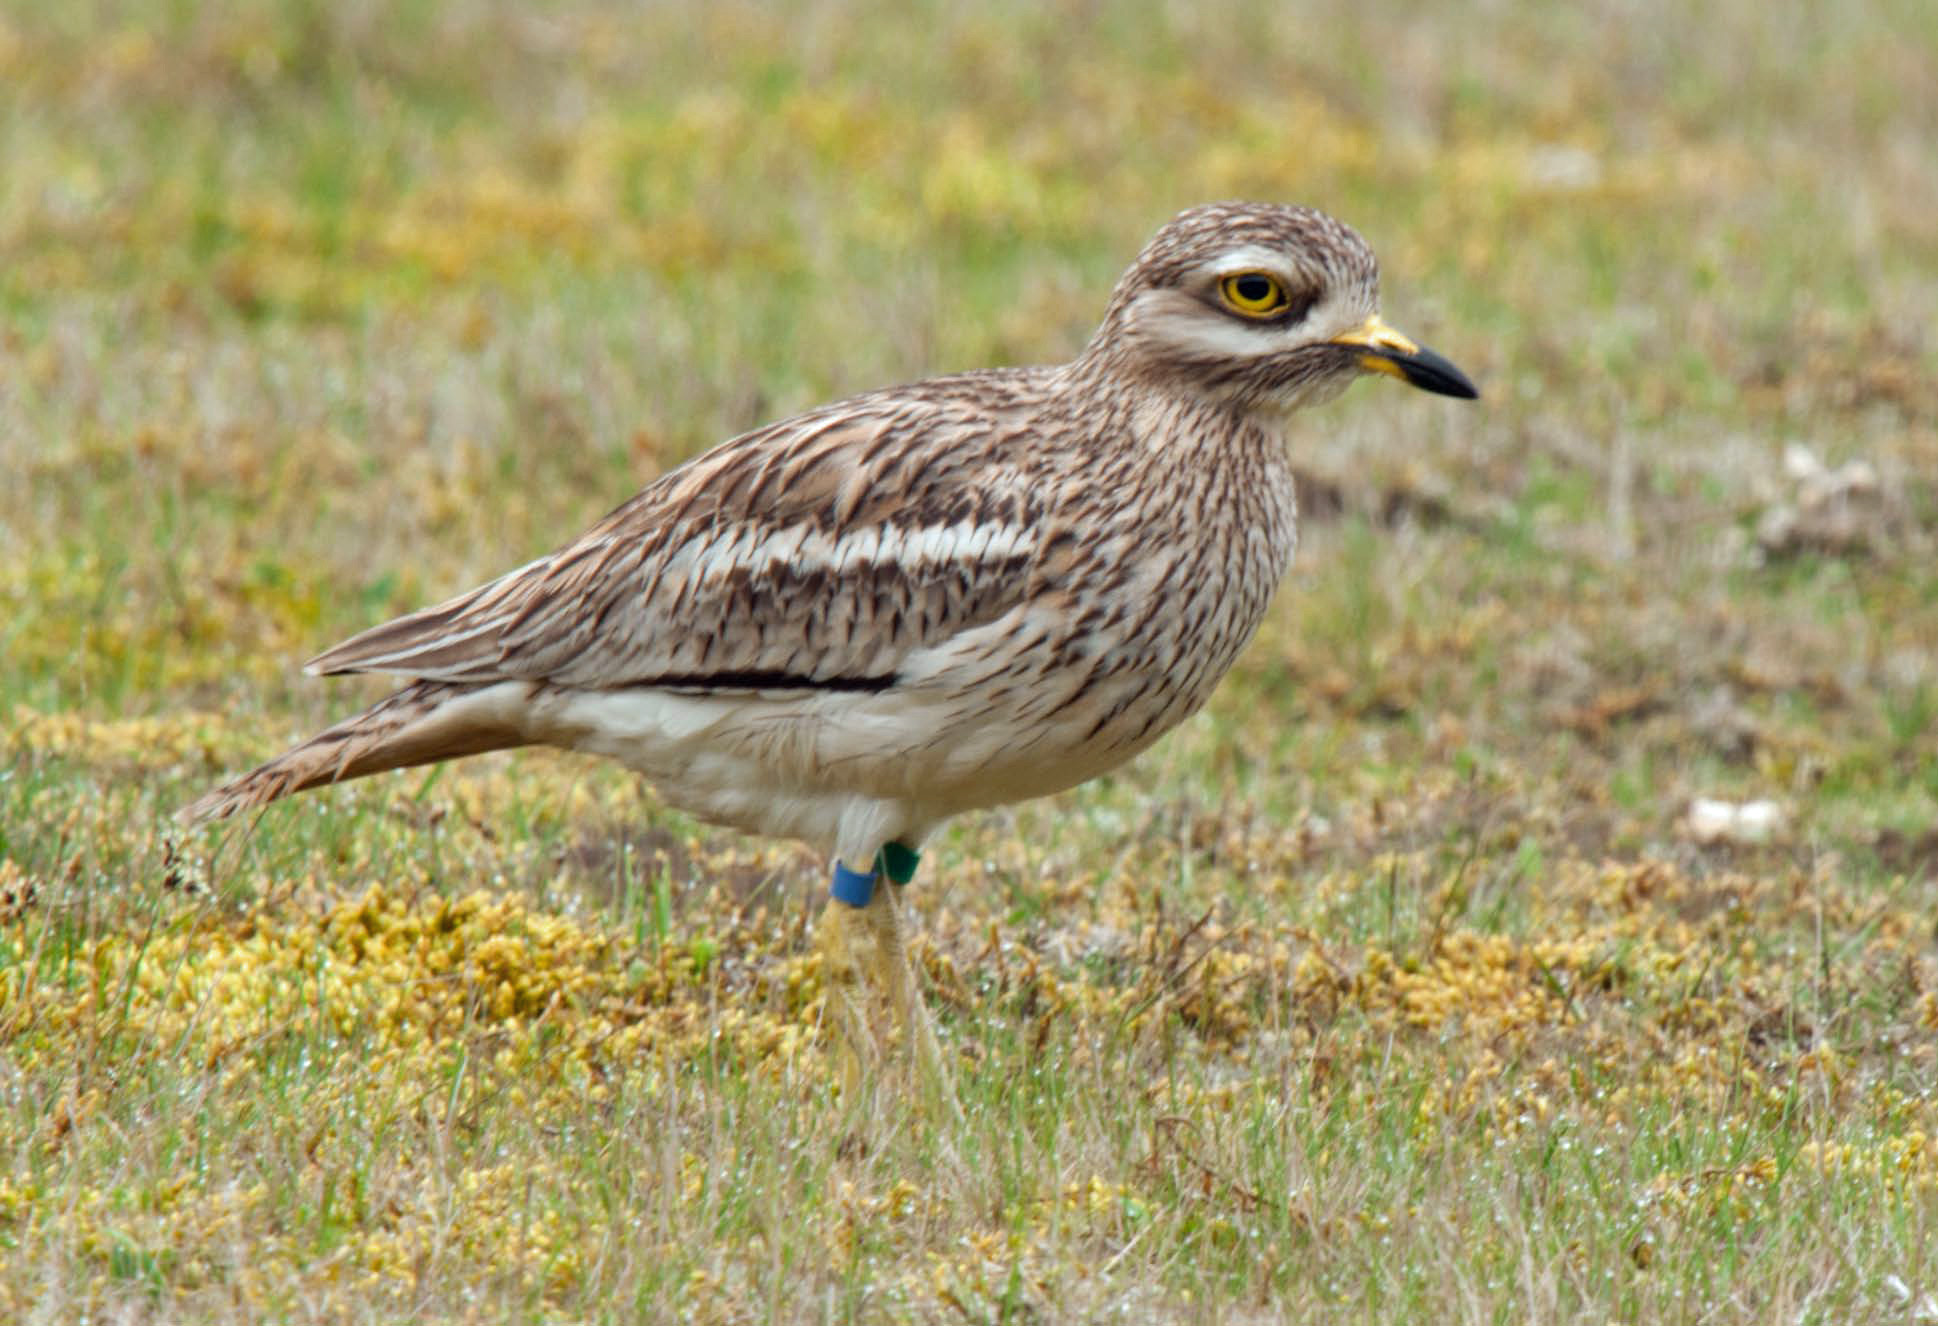 9 for 90: Stone curlew